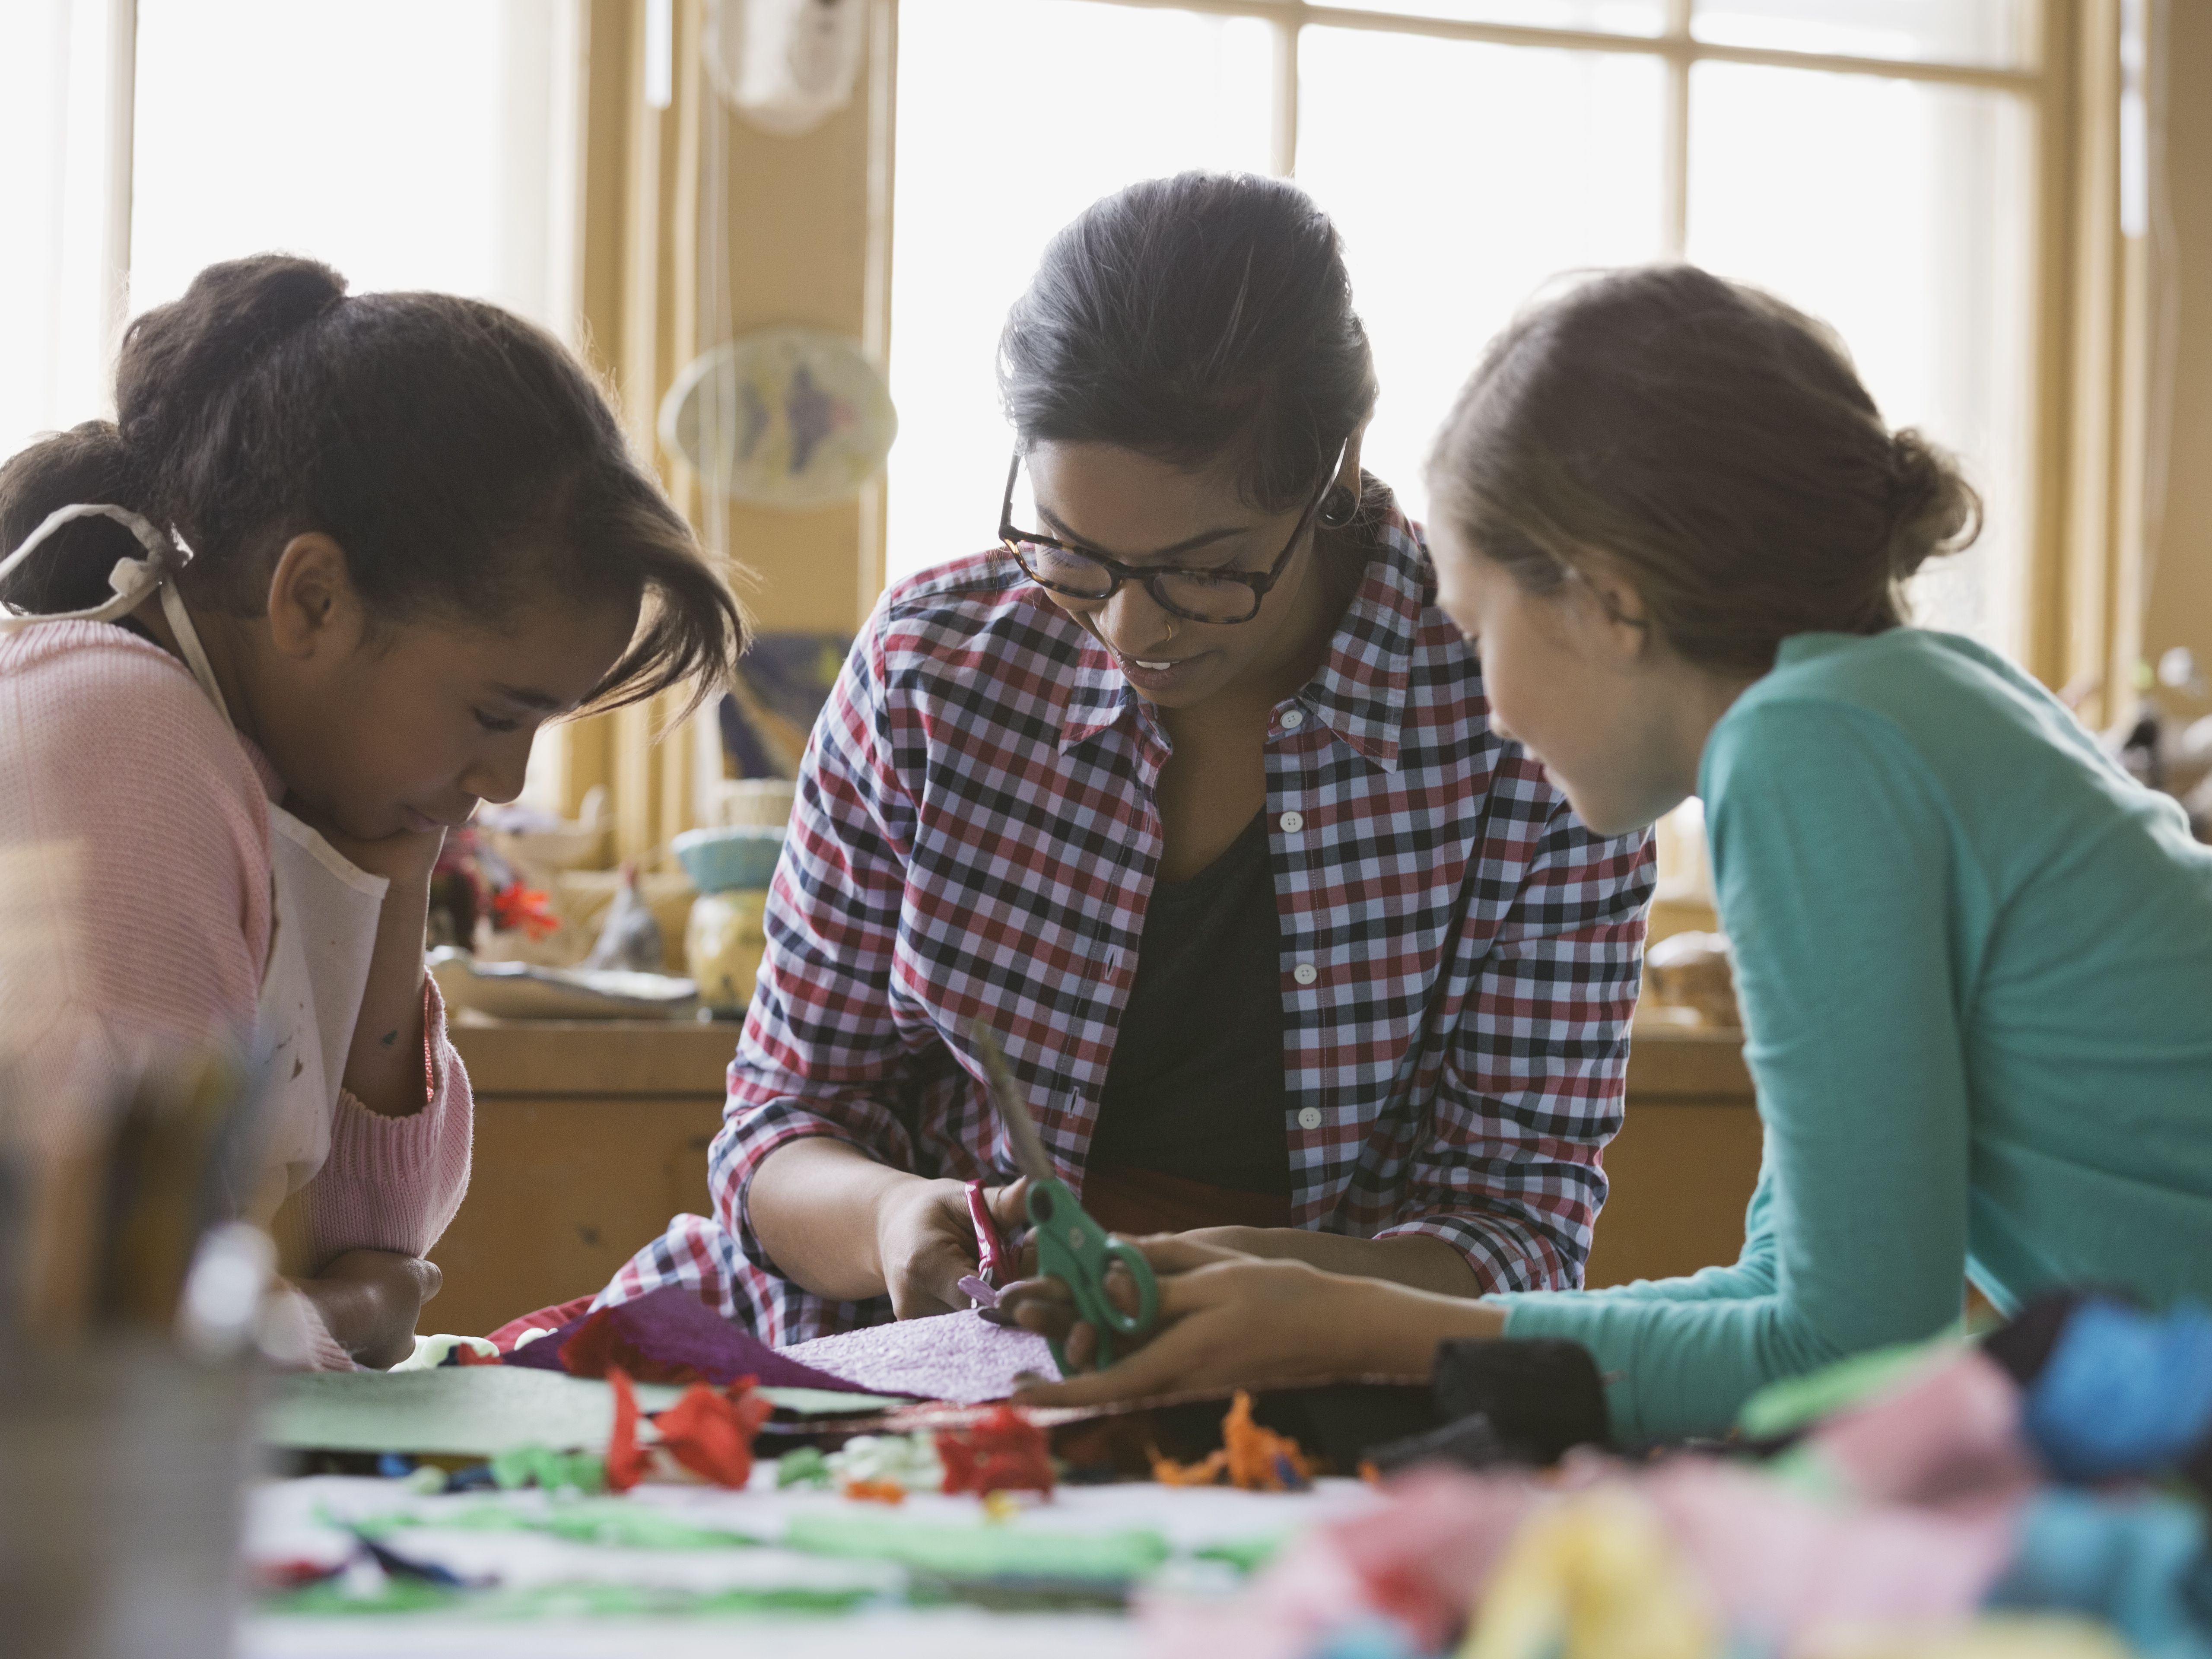 The 8 Best Craft Kits For Tweens In 2019